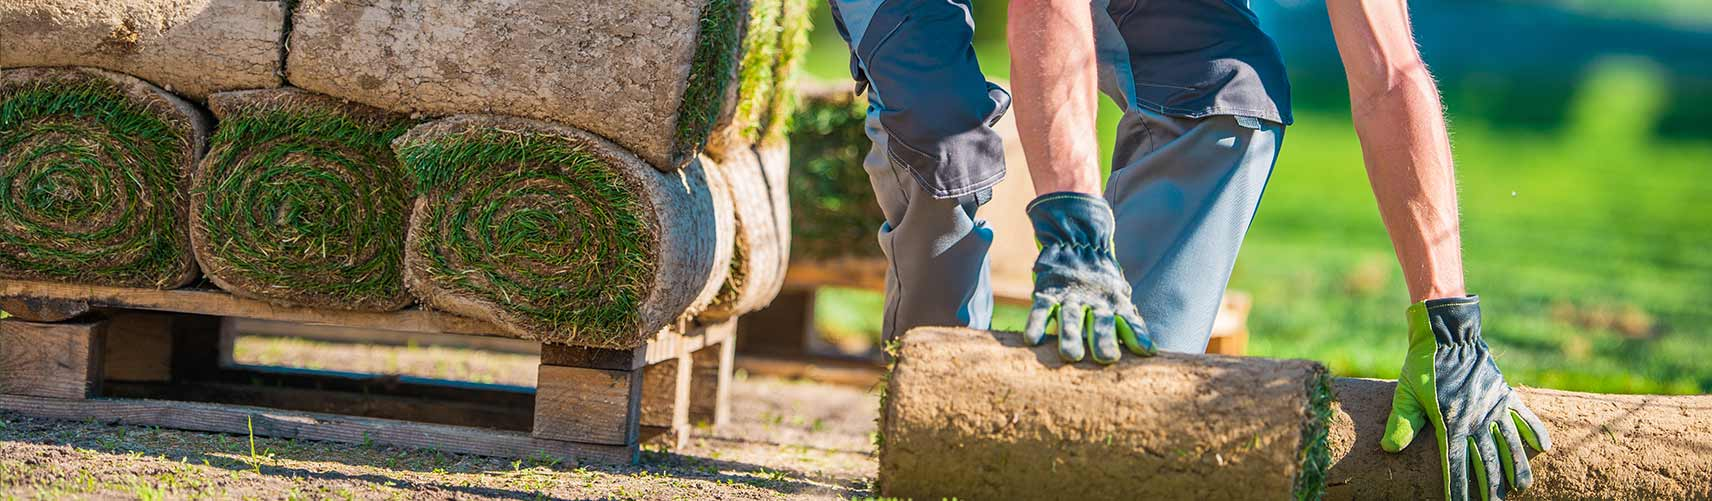 Champaign Landscaping Company, Landscaper and Lawn Care Services